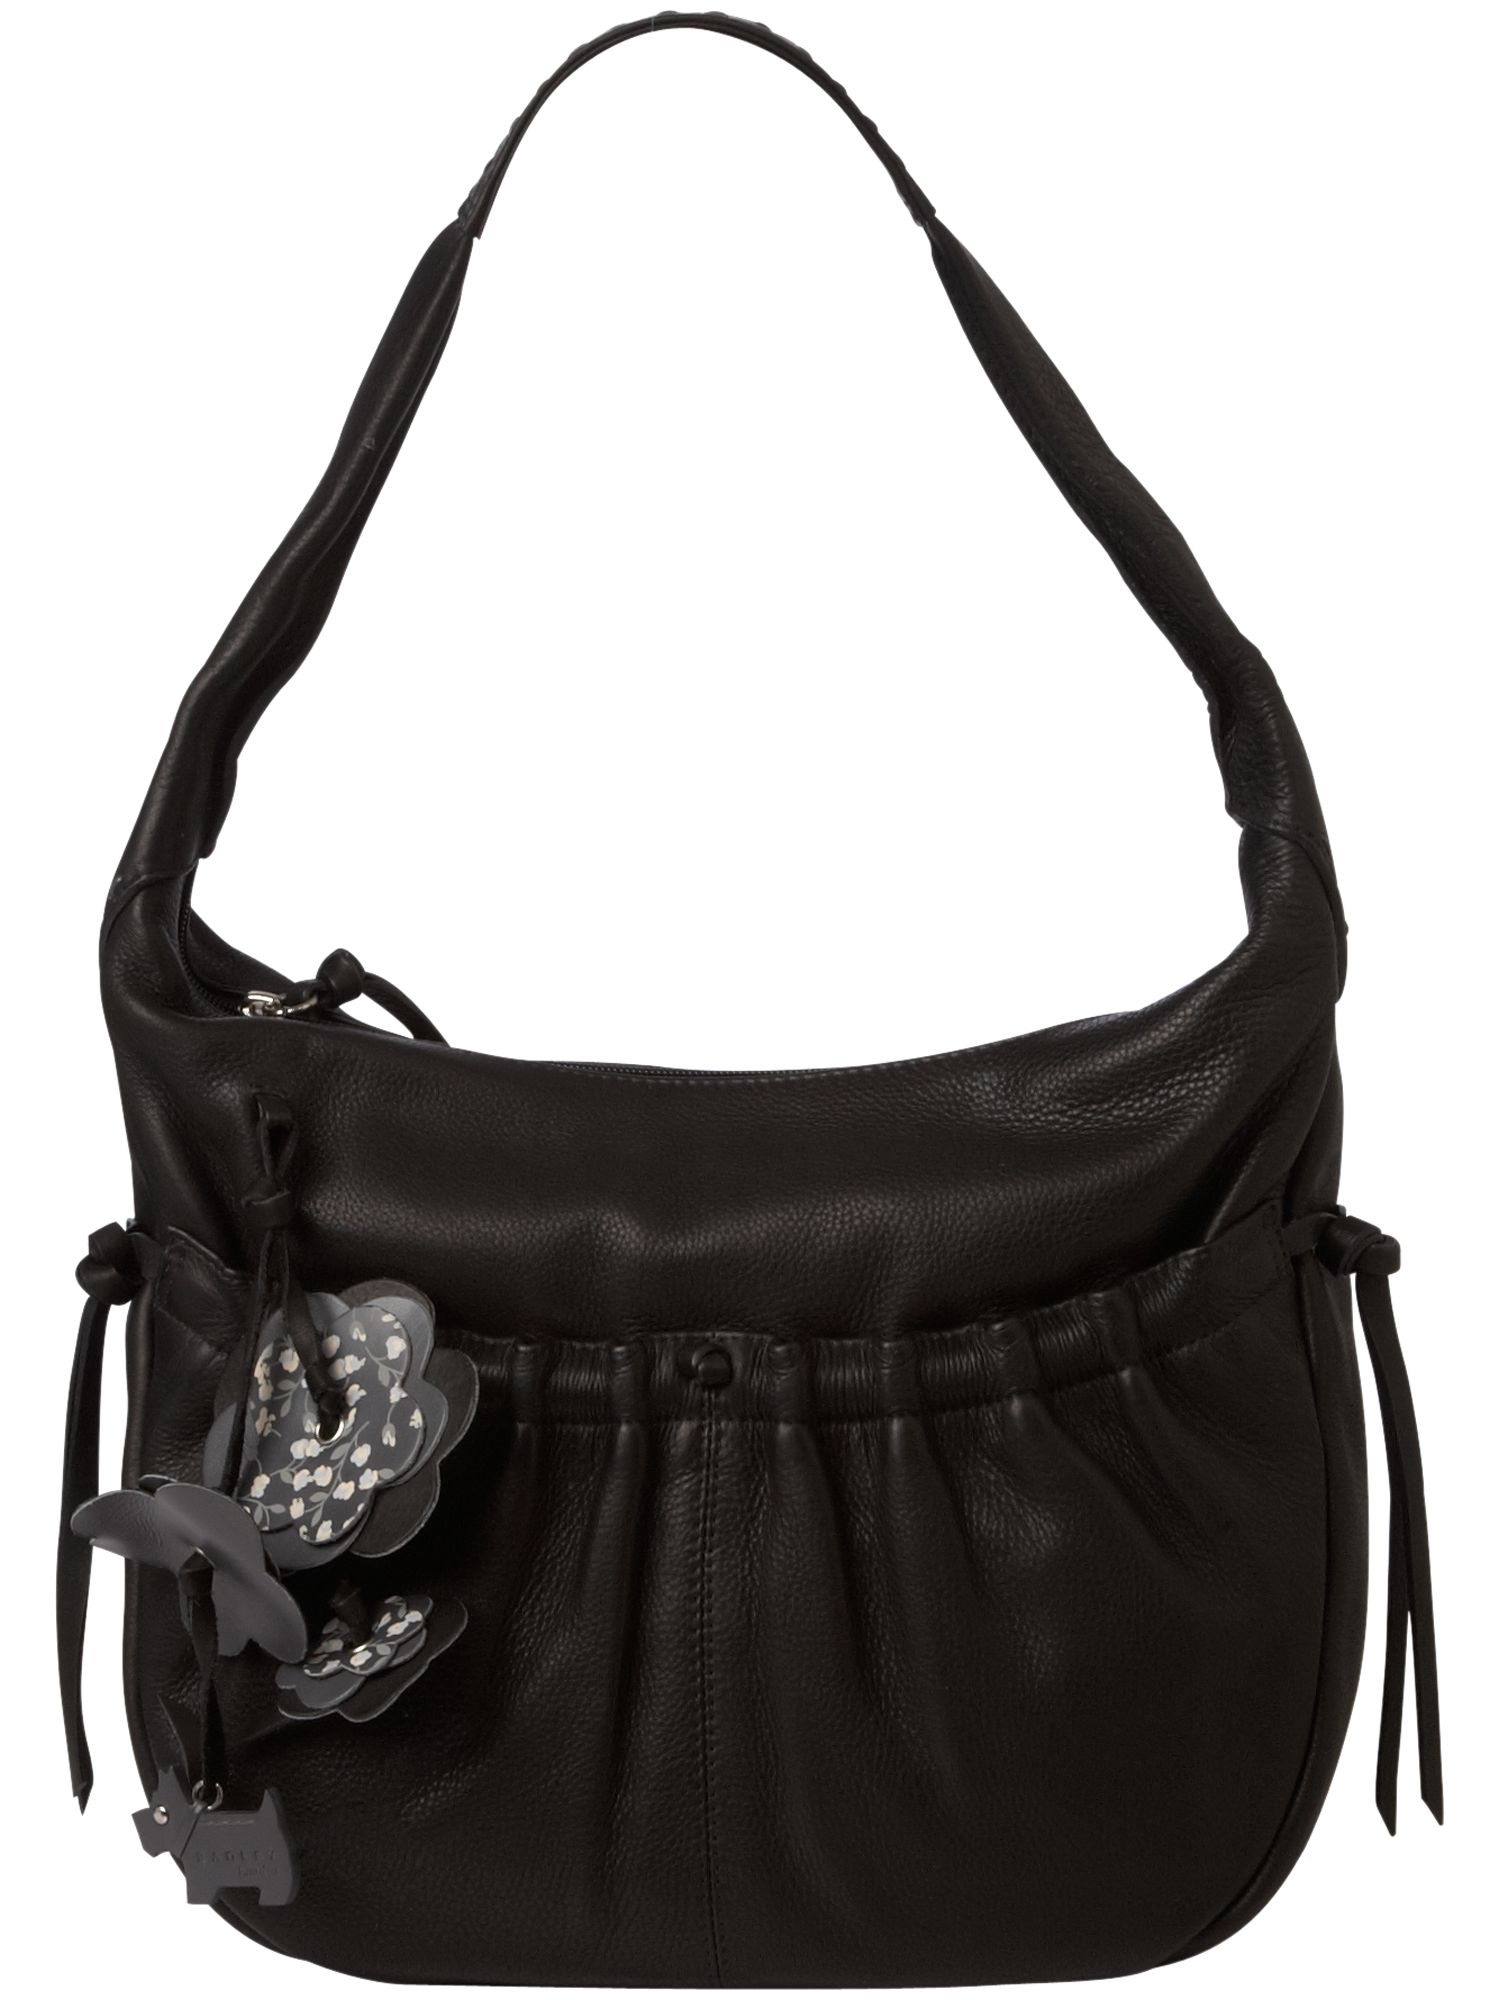 Radley Charleston Shoulder Hobo Bag product image